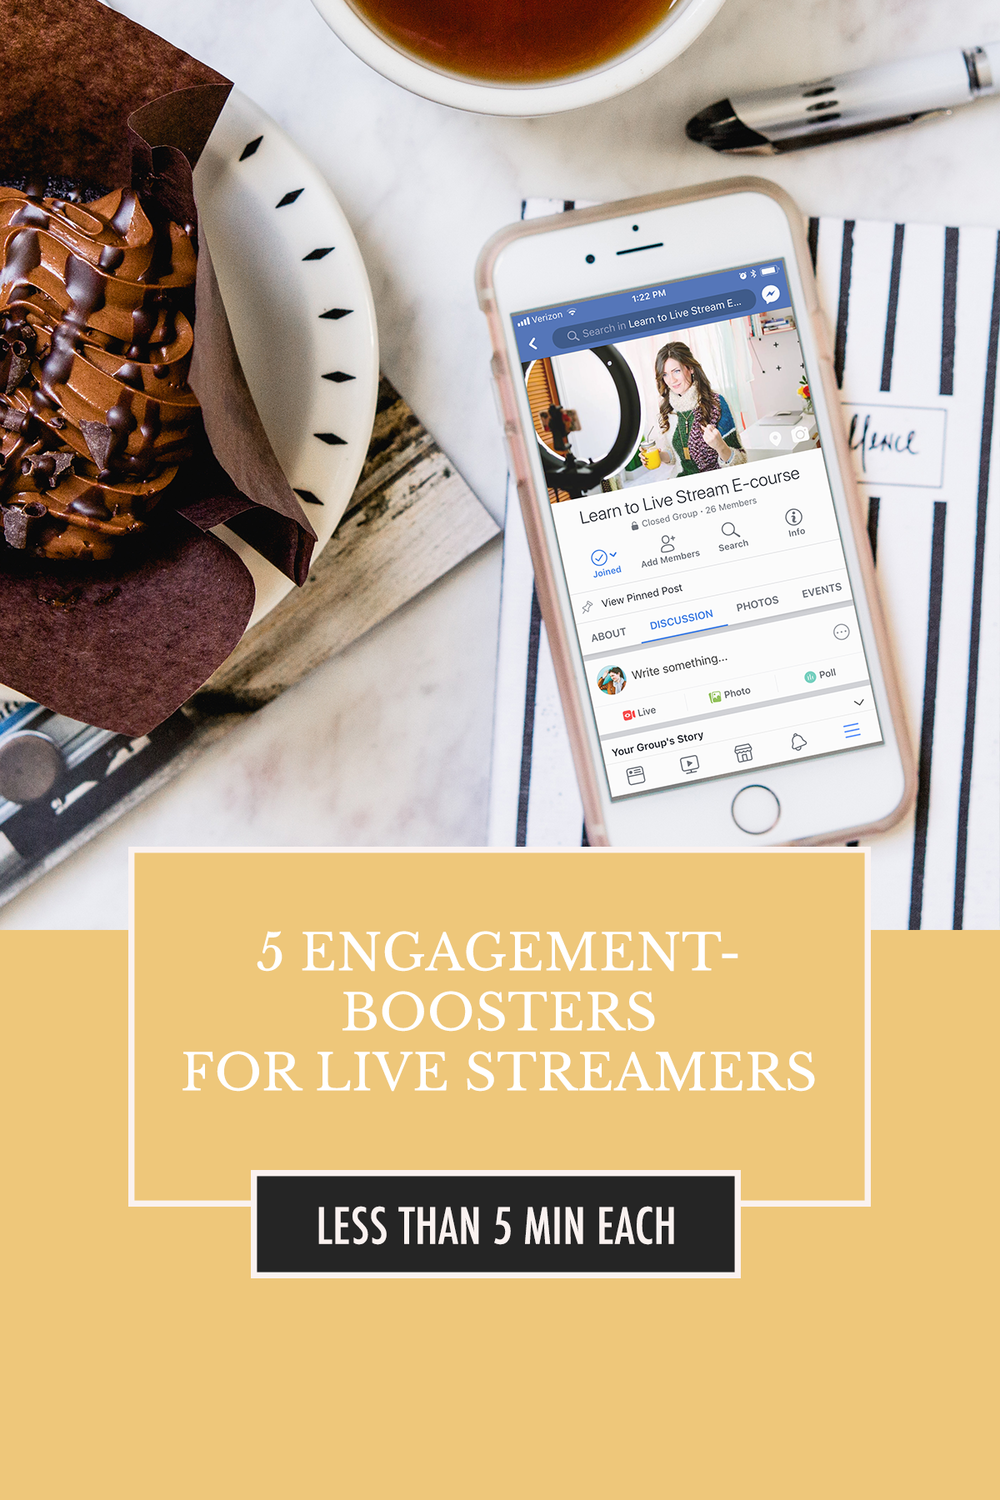 5 Engagement Boosters for Live Streamers on Any Platform |  Get more people to show up to your streams and interact with these 5 free, simple steps!  | Alexis the Greek blog